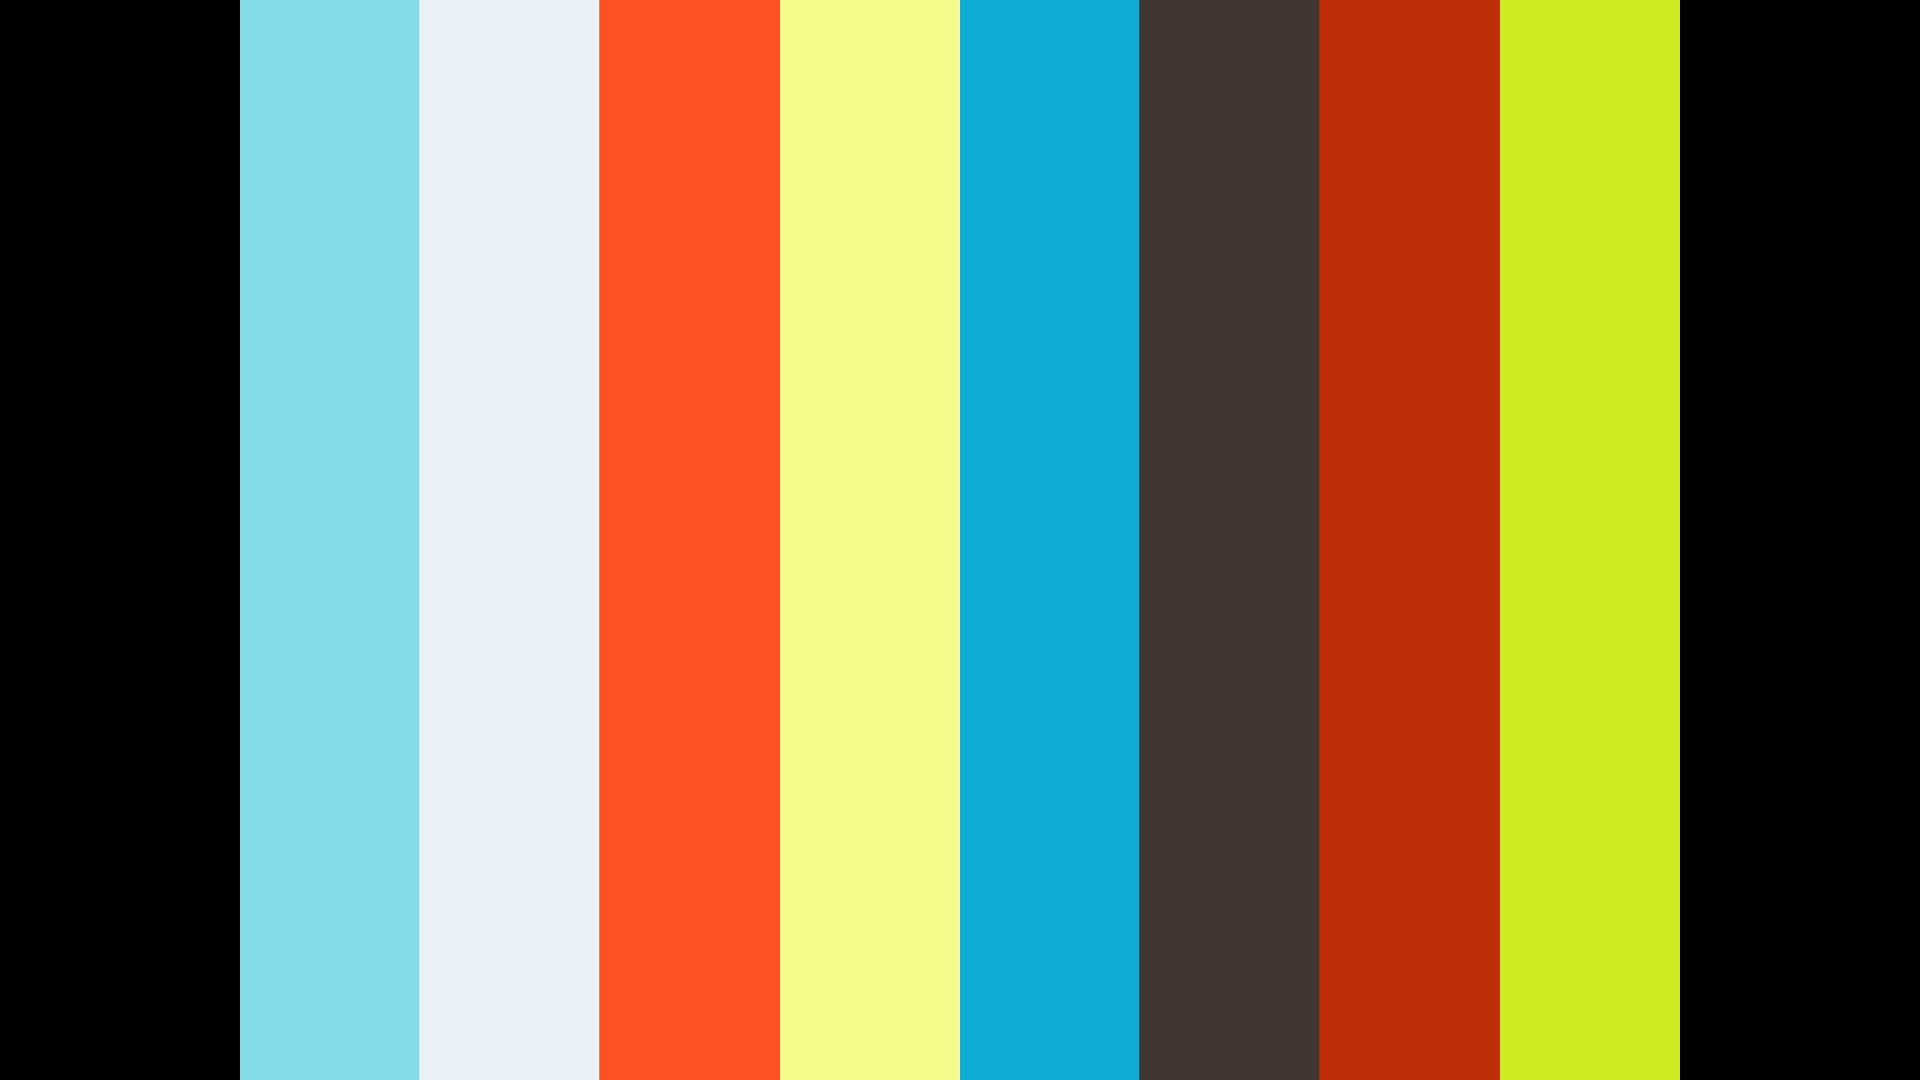 Une repentance permanente